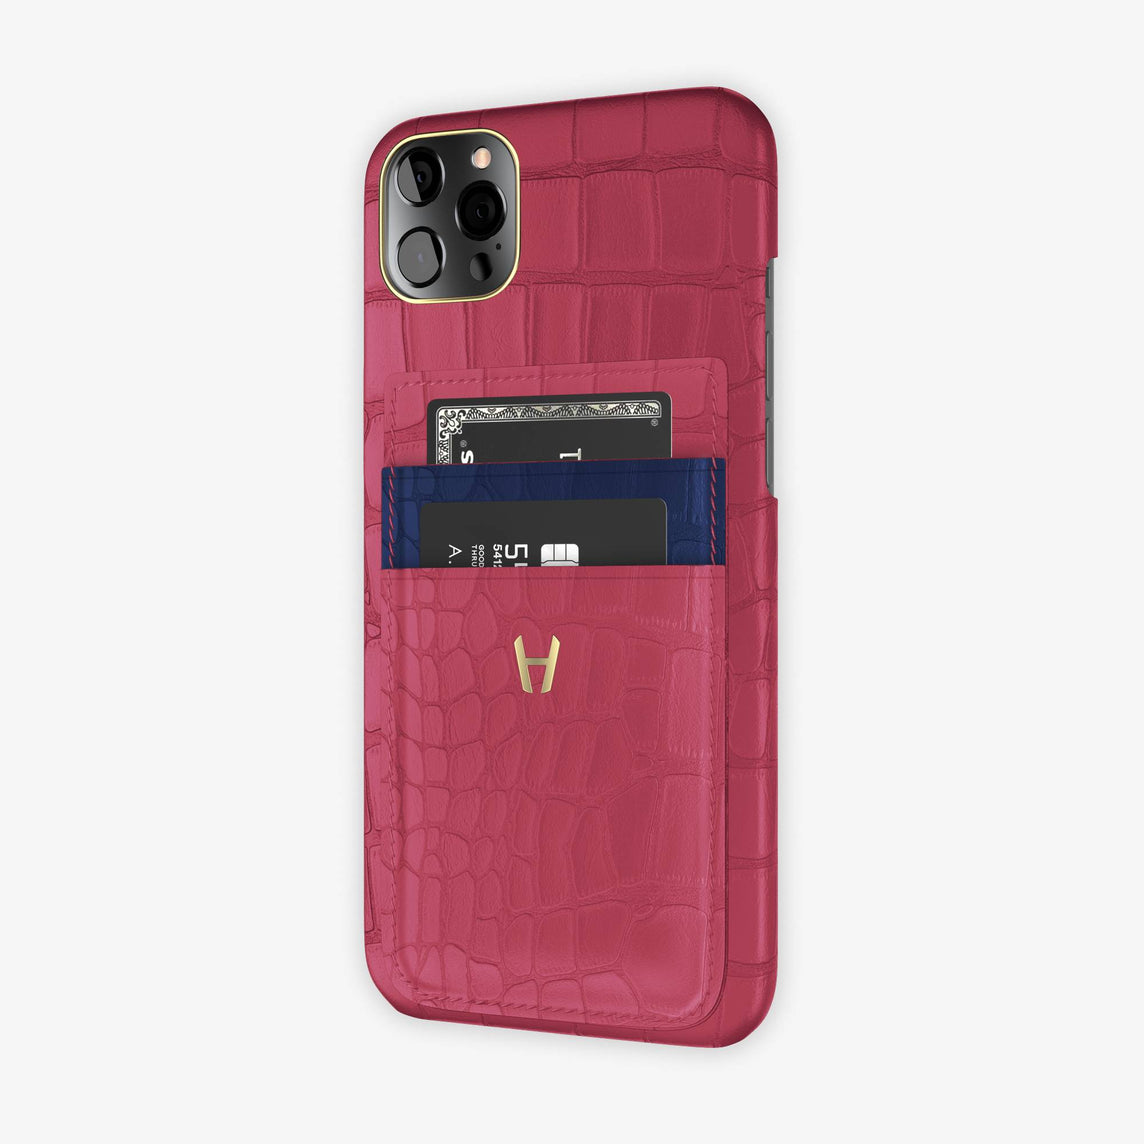 Alligator Pocket Case iPhone 12 Pro Max | Pink Girly/Navy Blue - Yellow Gold